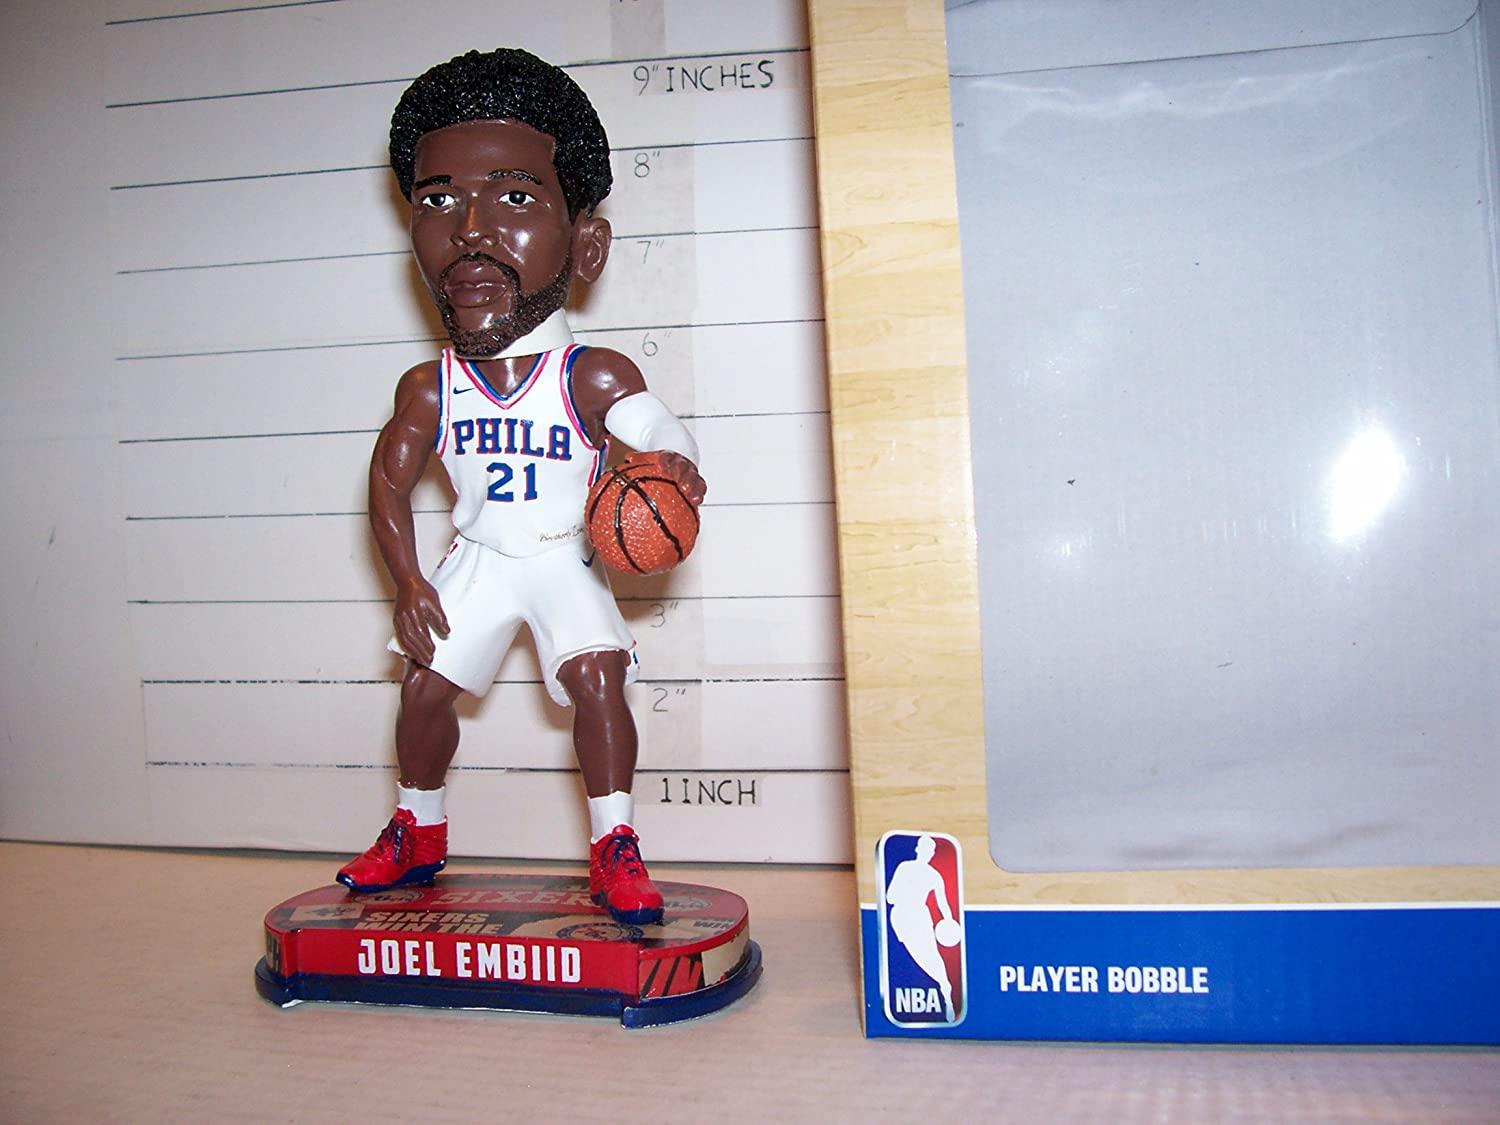 2018 JOEL EMBIID FIRST (ROOKIE) BOBBLEHEAD PHILADELPHIA 76'ERS (LOW PRINT RUN !) Forever